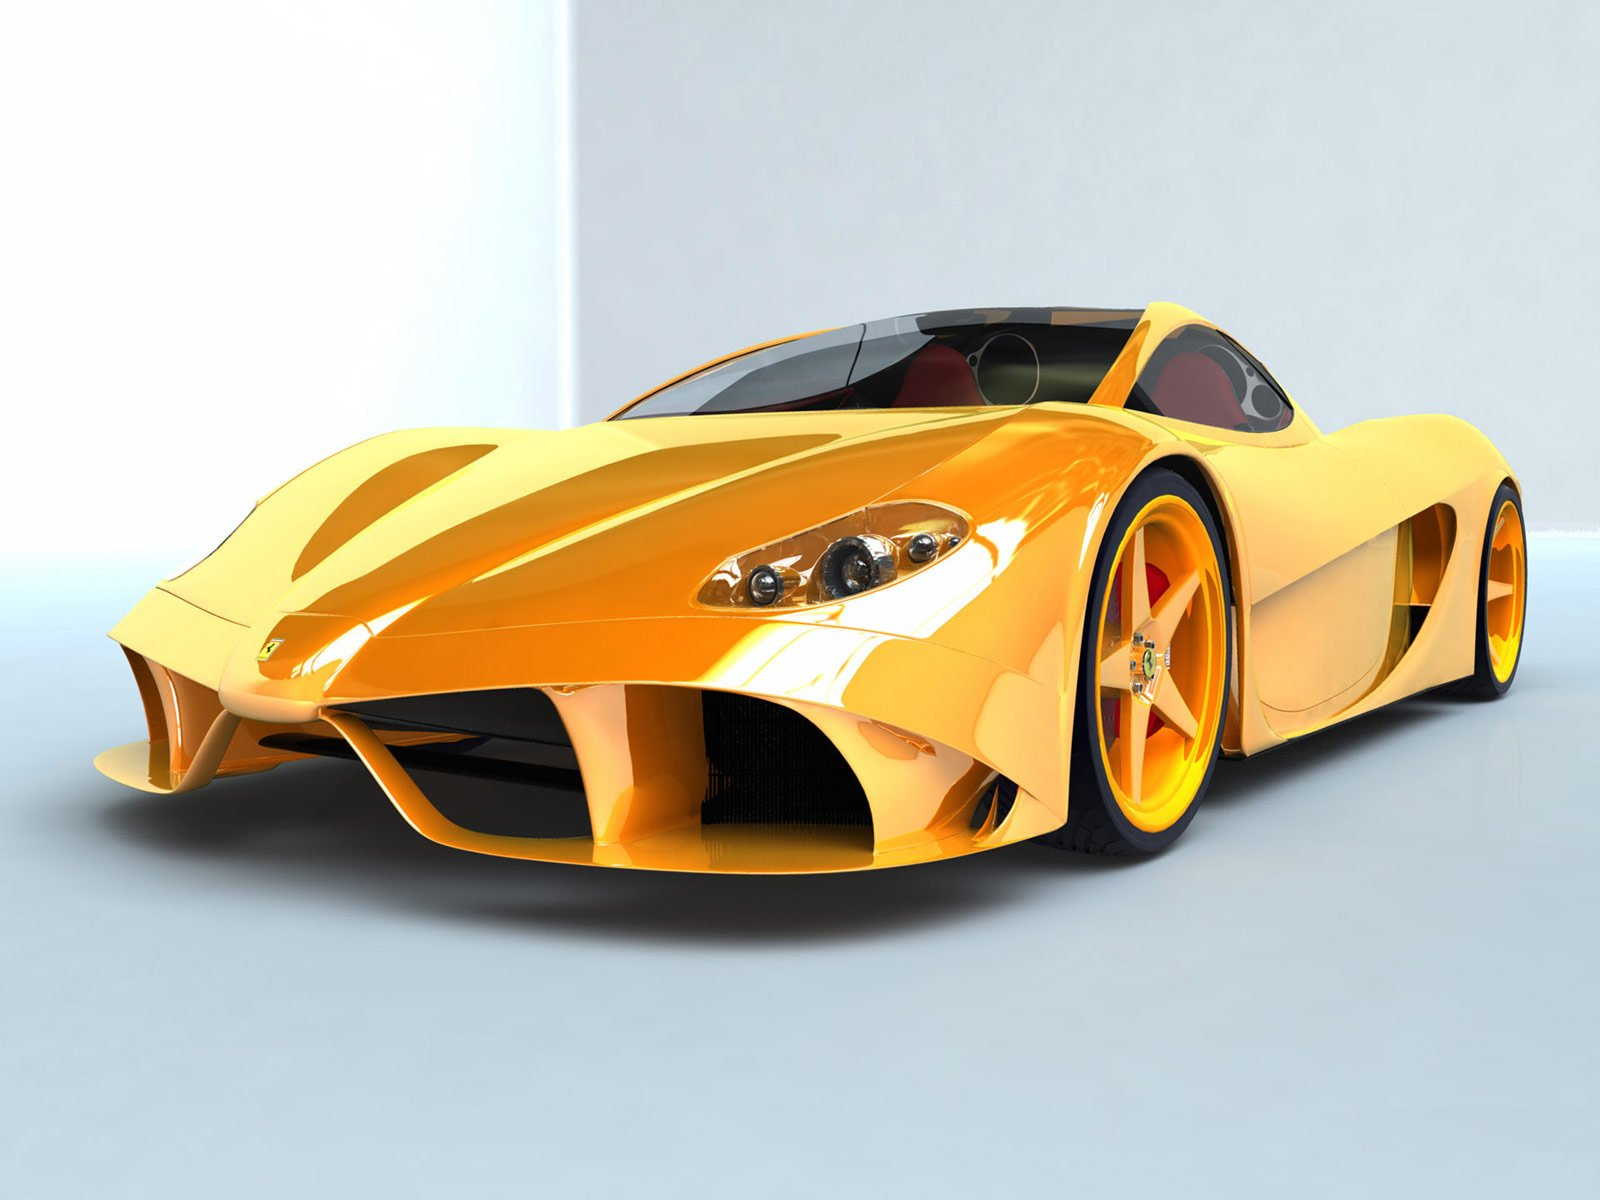 Exotic cars wallpaper Hd Cars Wallpapers And Pictures car imagescar 1600x1200